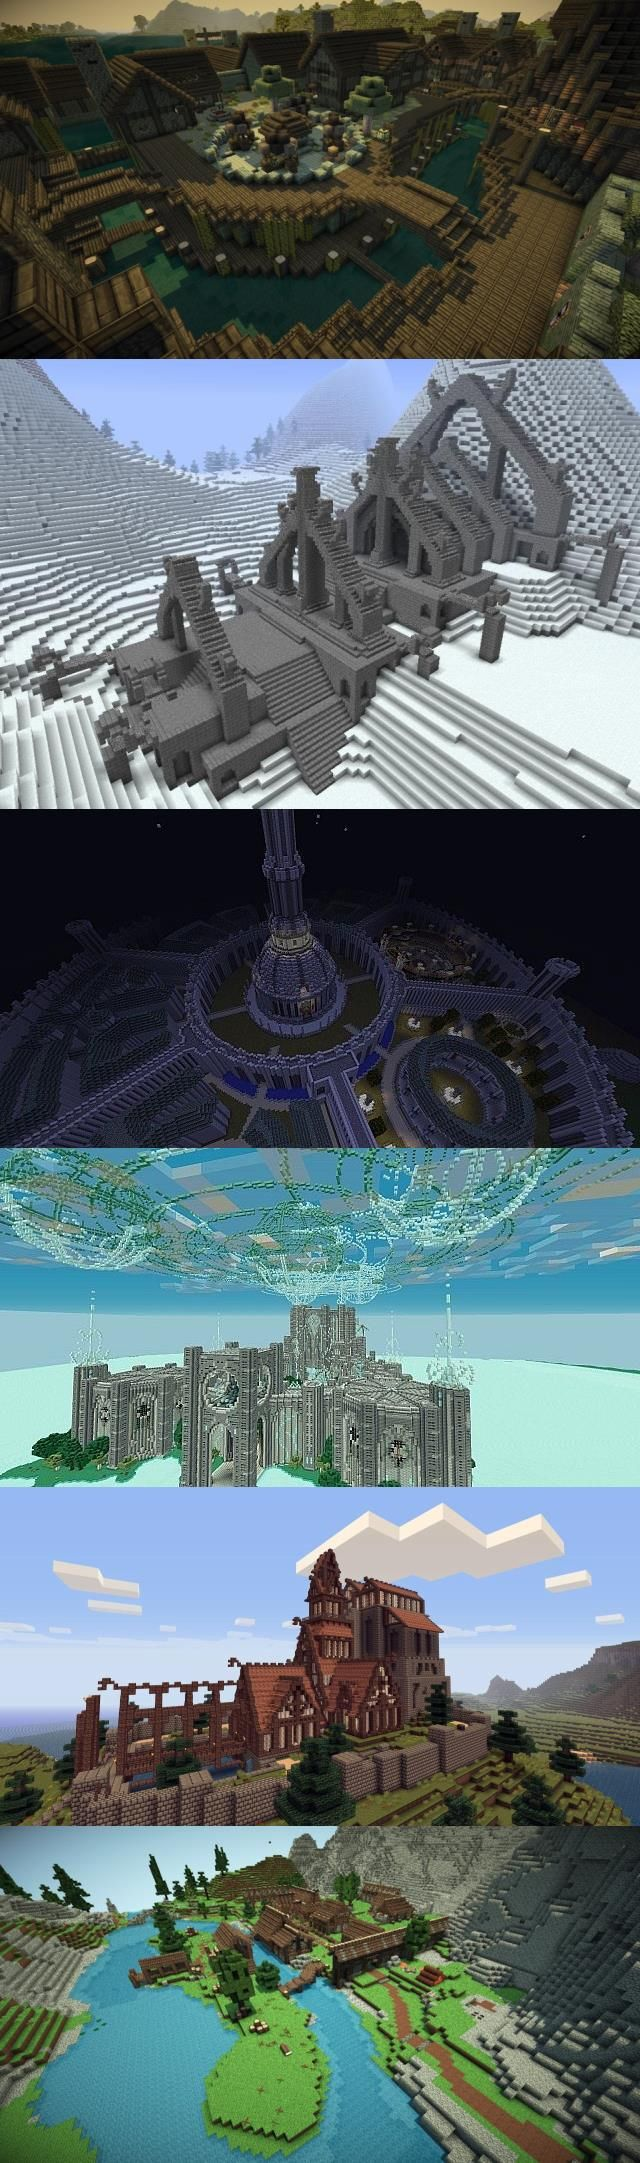 The Elder Scrolls in minecraft. From top to bottom: Riften, Volsung, The Imperial City from oblivion, The college of Winterhold, Dragonsreach, and Riverwood. This is beautiful